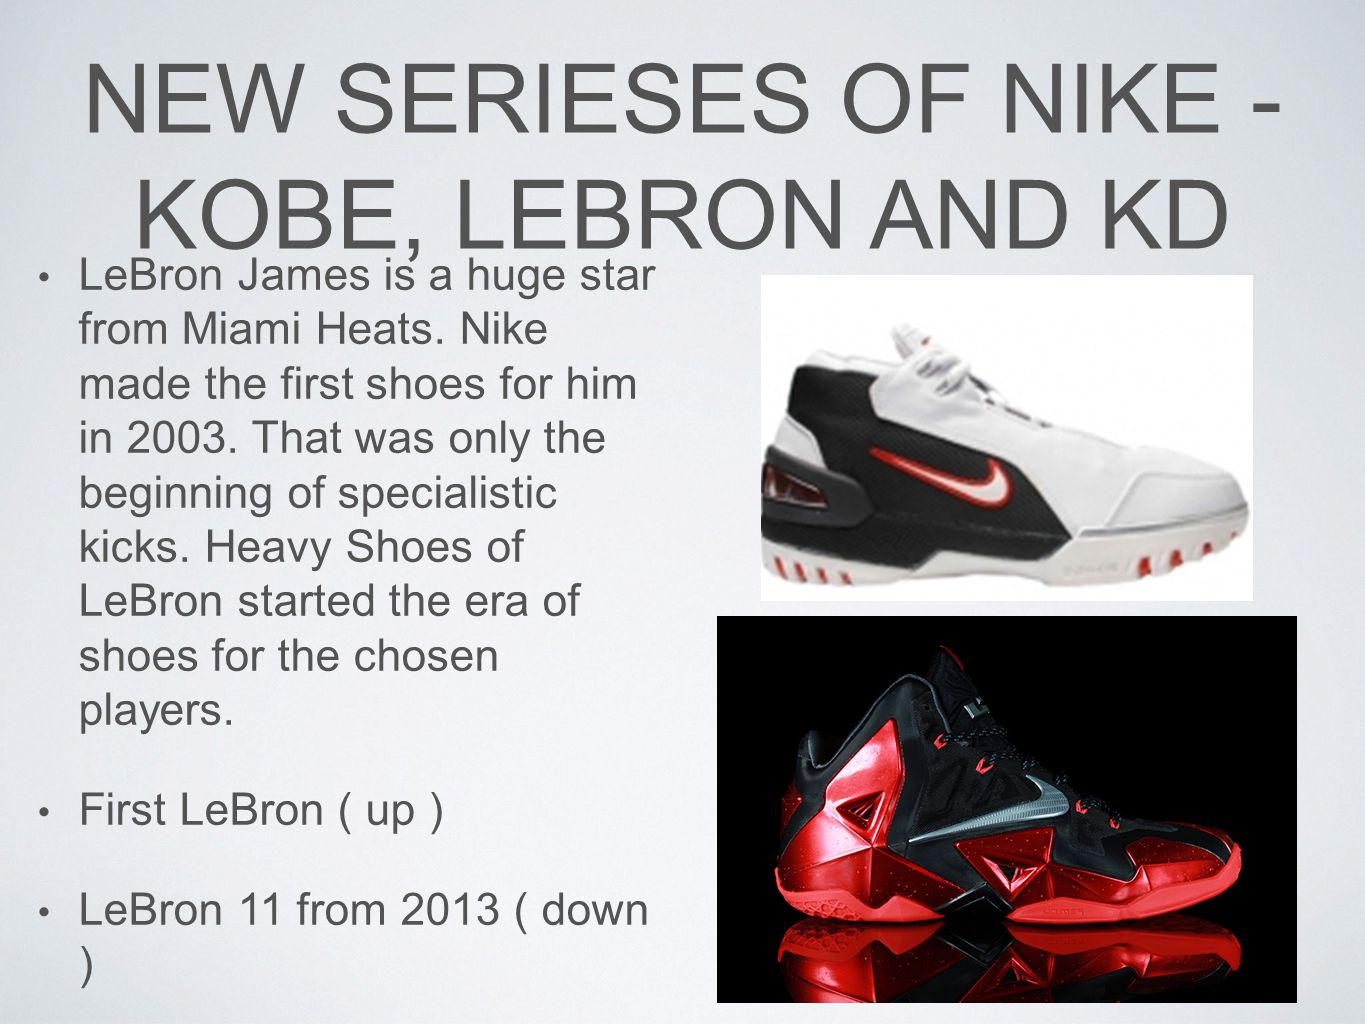 NEW SERIESES OF NIKE - KOBE, LEBRON AND KD LeBron James is a huge star from Miami Heats.